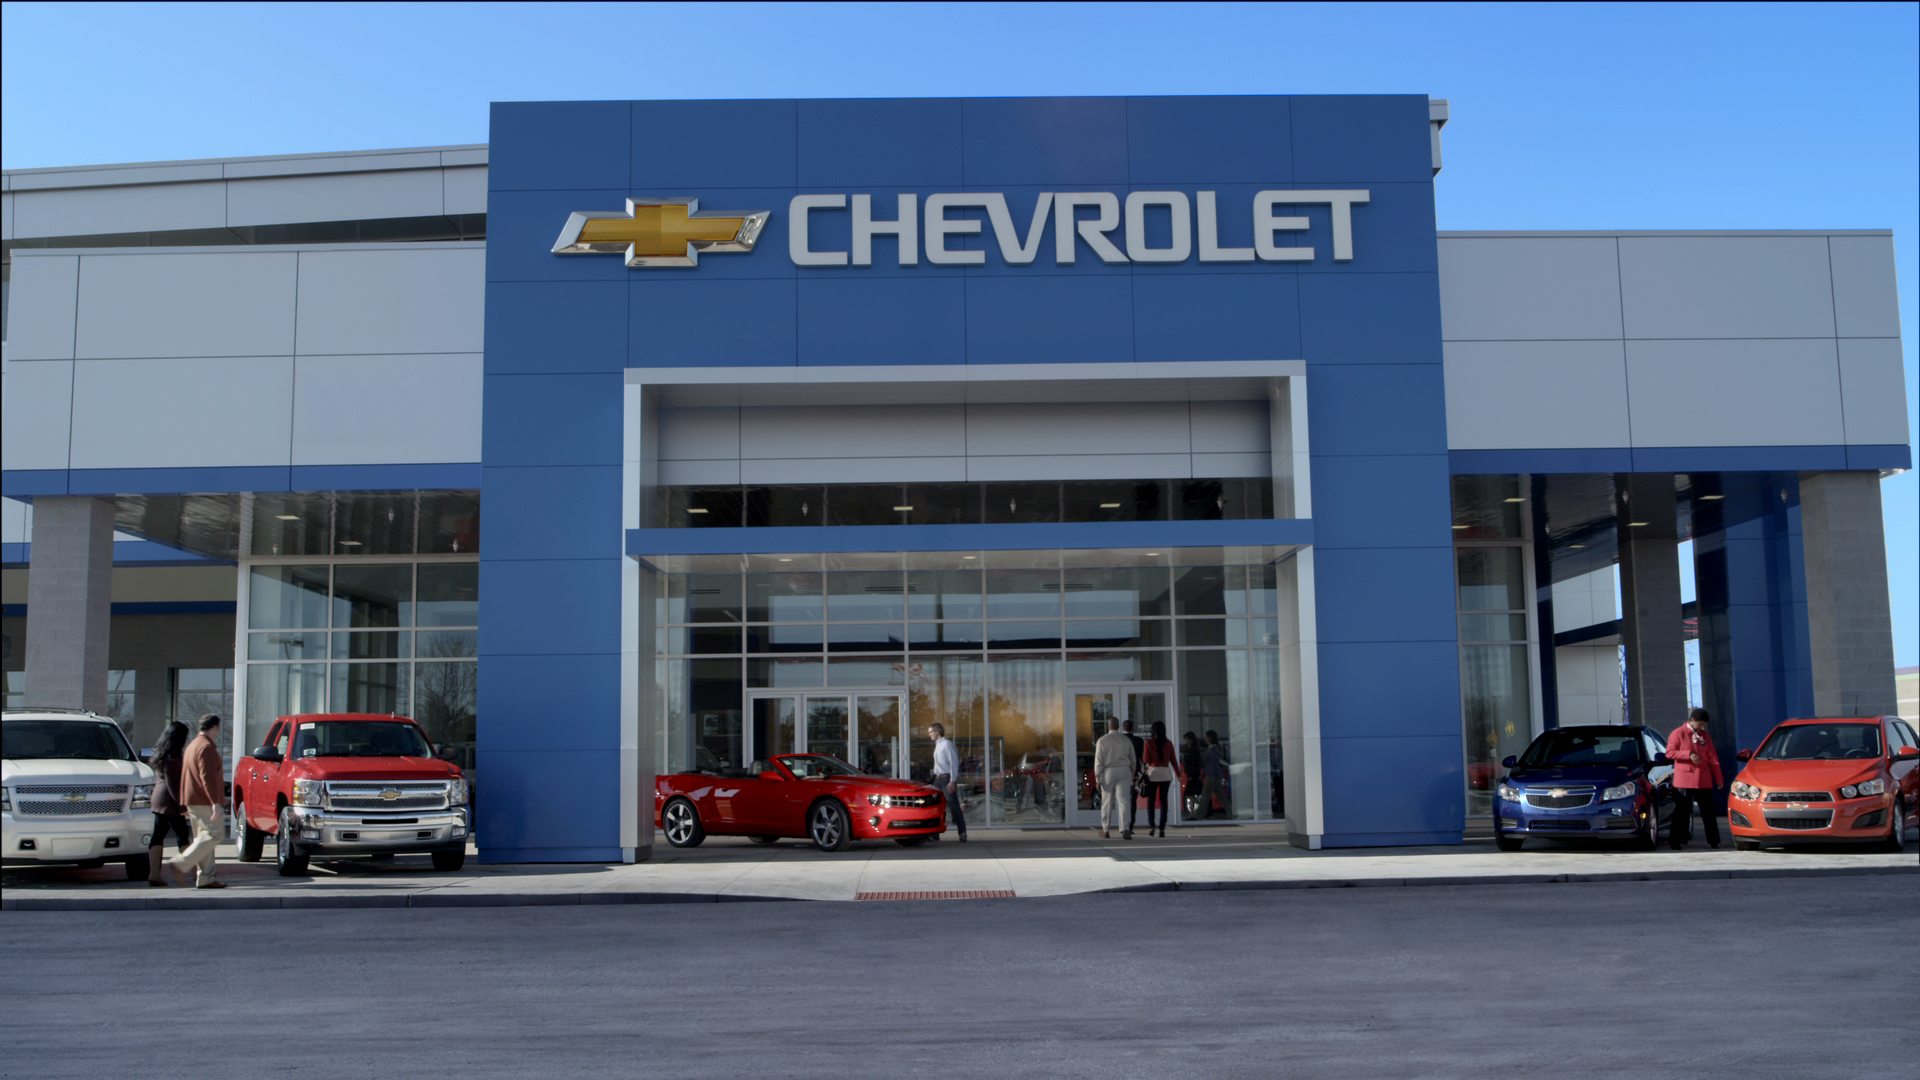 auto avenue in white river junction sees return of chevrolet dealership image magazine